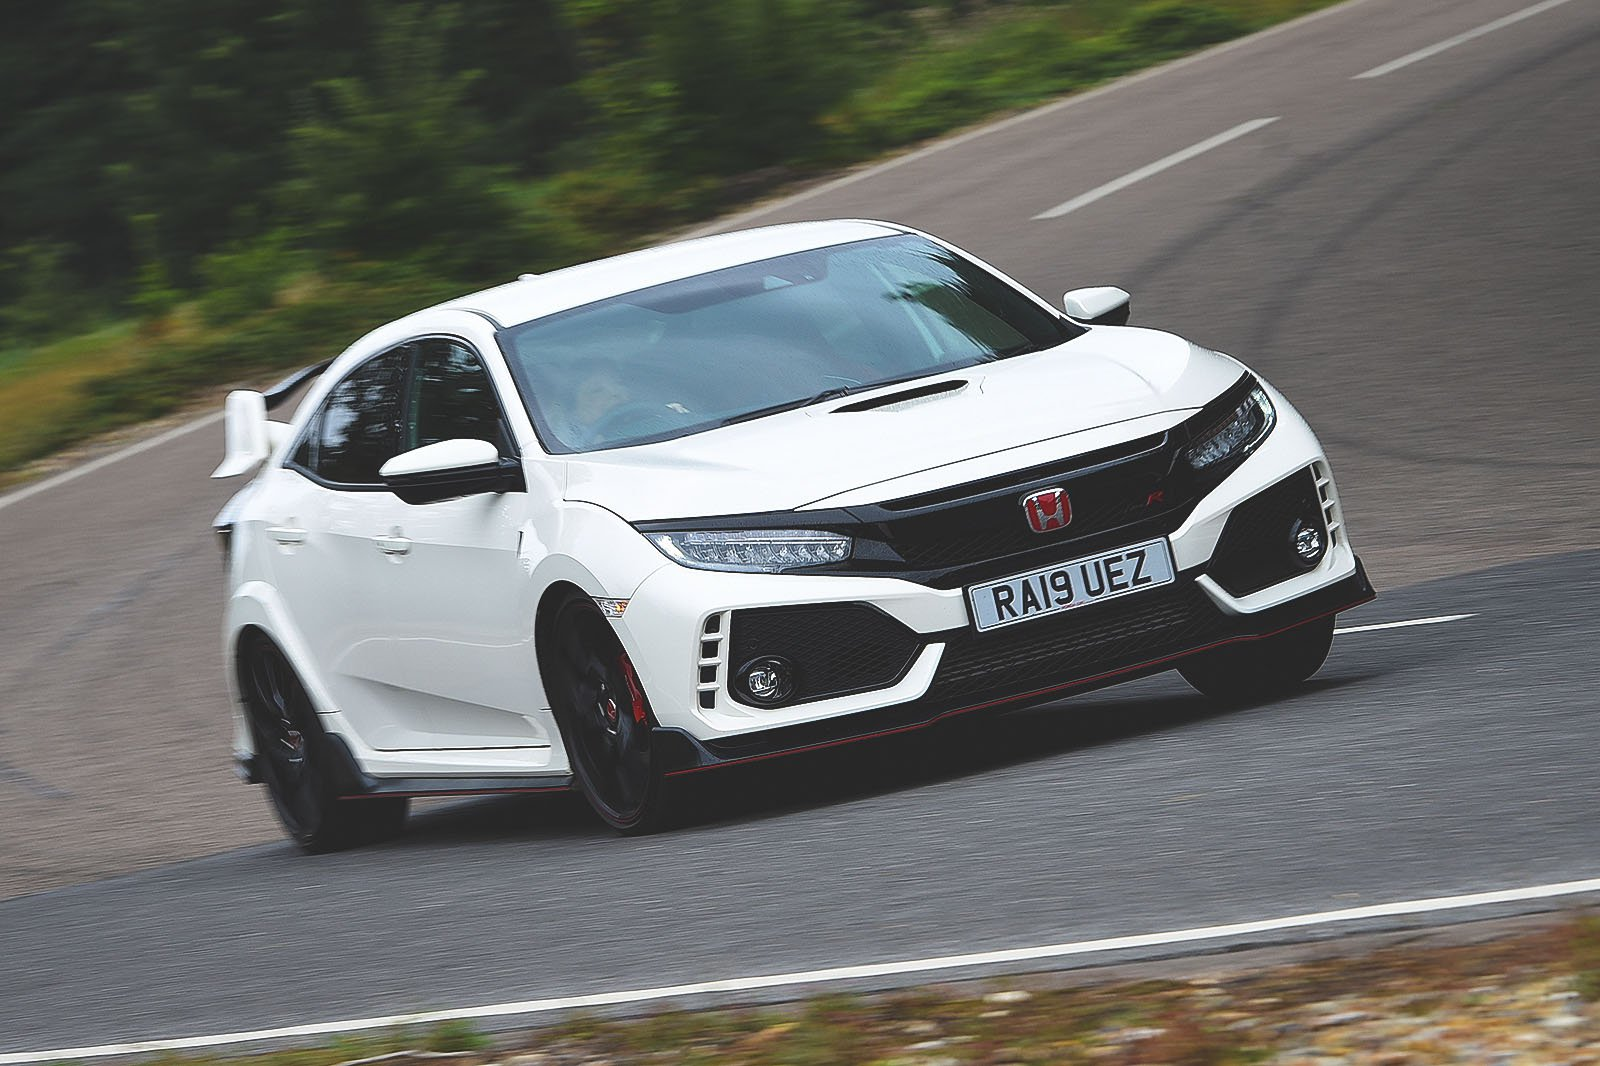 Honda Civic Type R driving